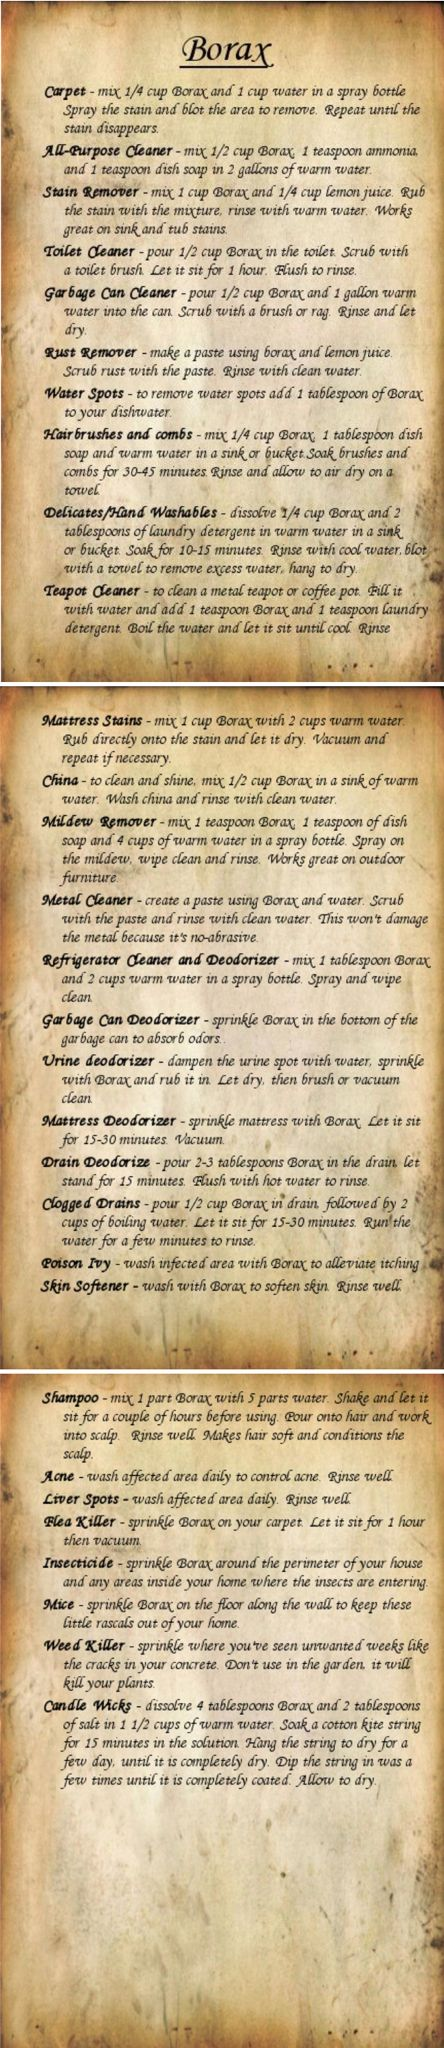 '30 Uses for Borax - WWII Series...!' (via Fluster Buster)